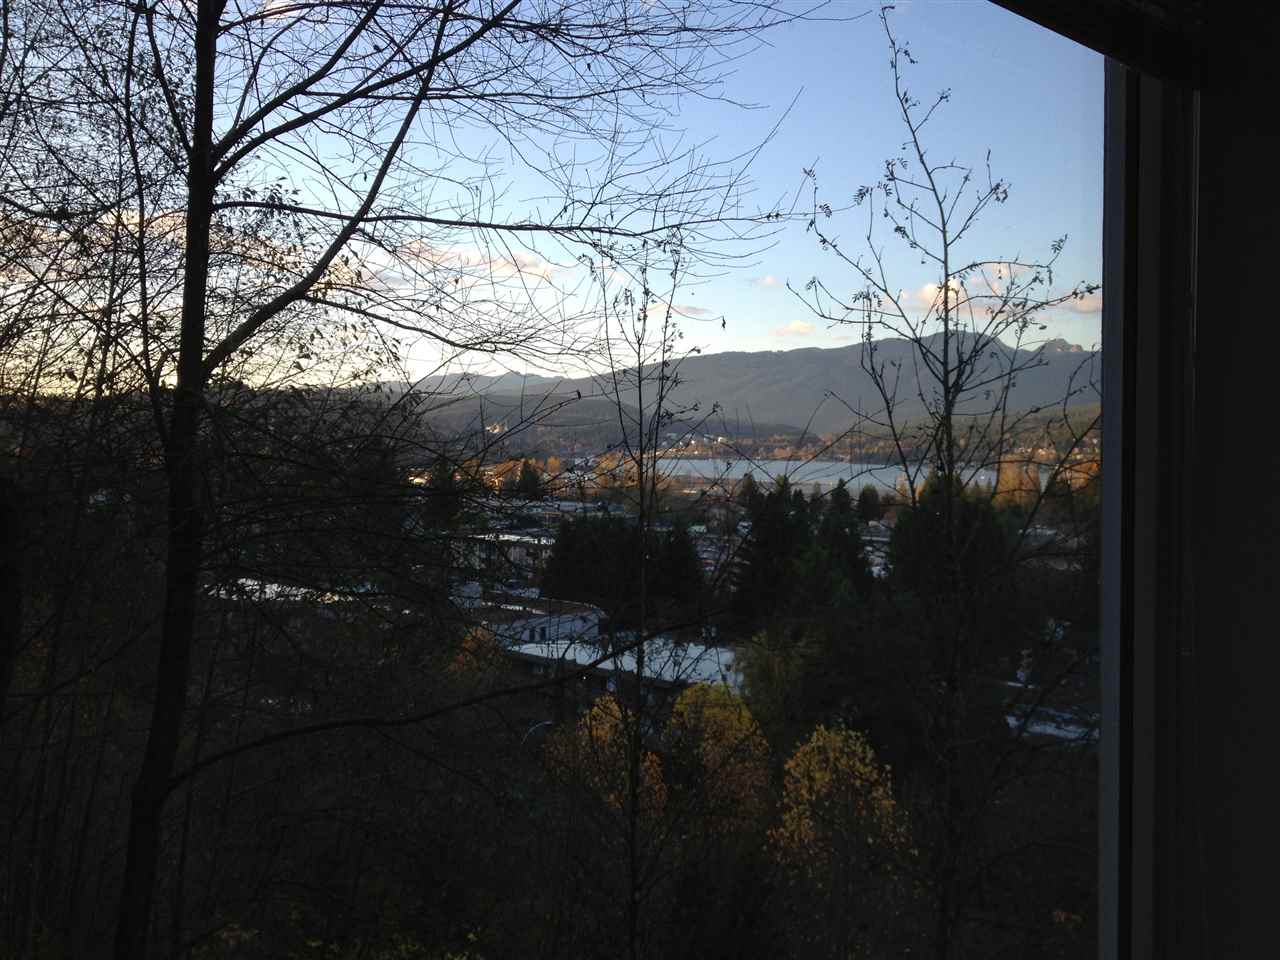 Photo 13: 208 3033 TERRAVISTA PLACE in Port Moody: Port Moody Centre Condo for sale : MLS(r) # R2075318